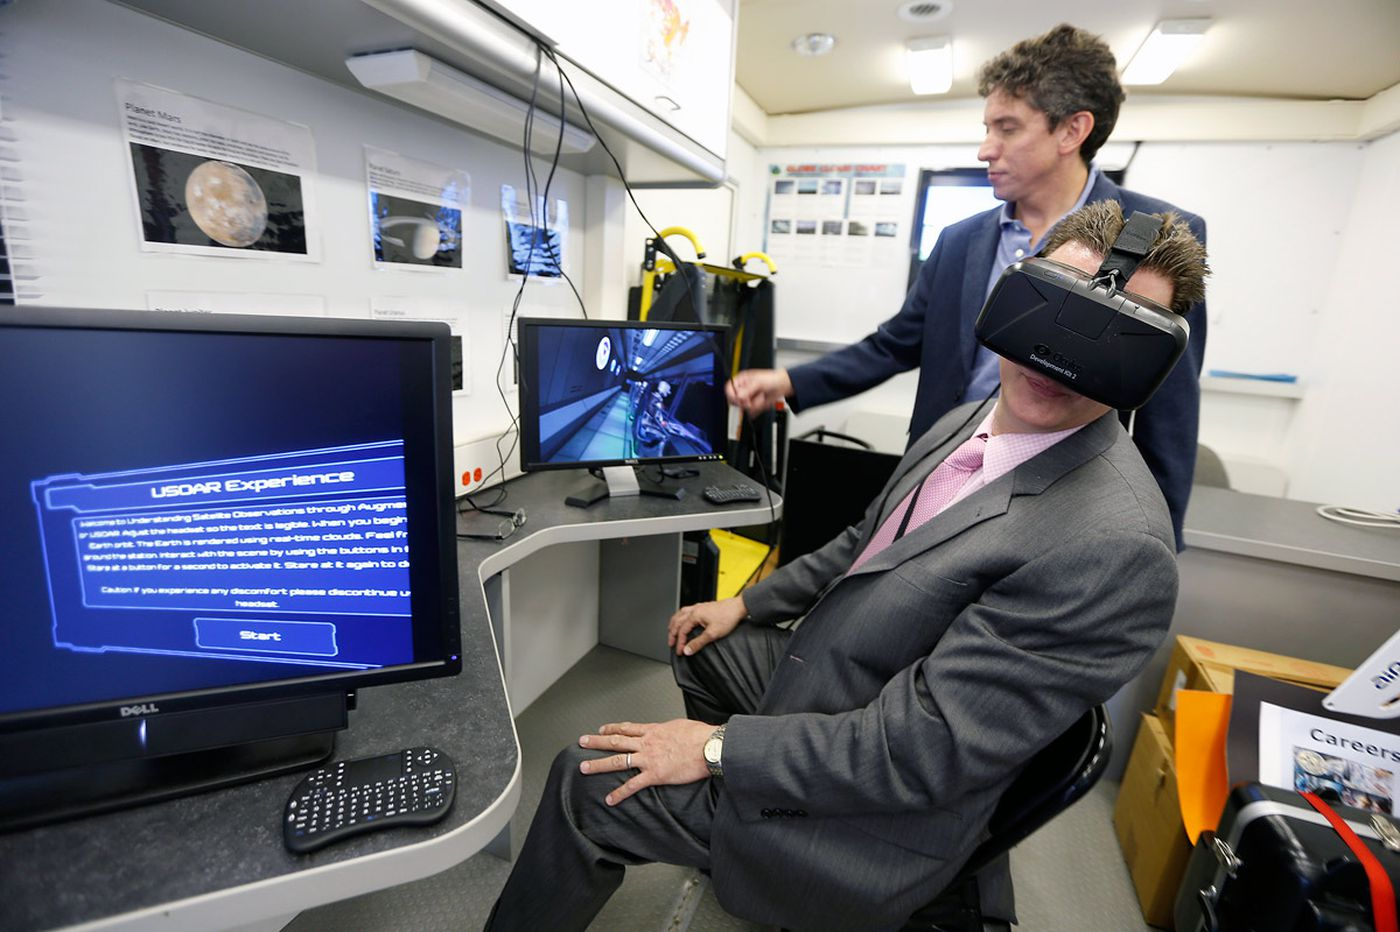 'Space station' lands in Mount Laurel, wows visitors